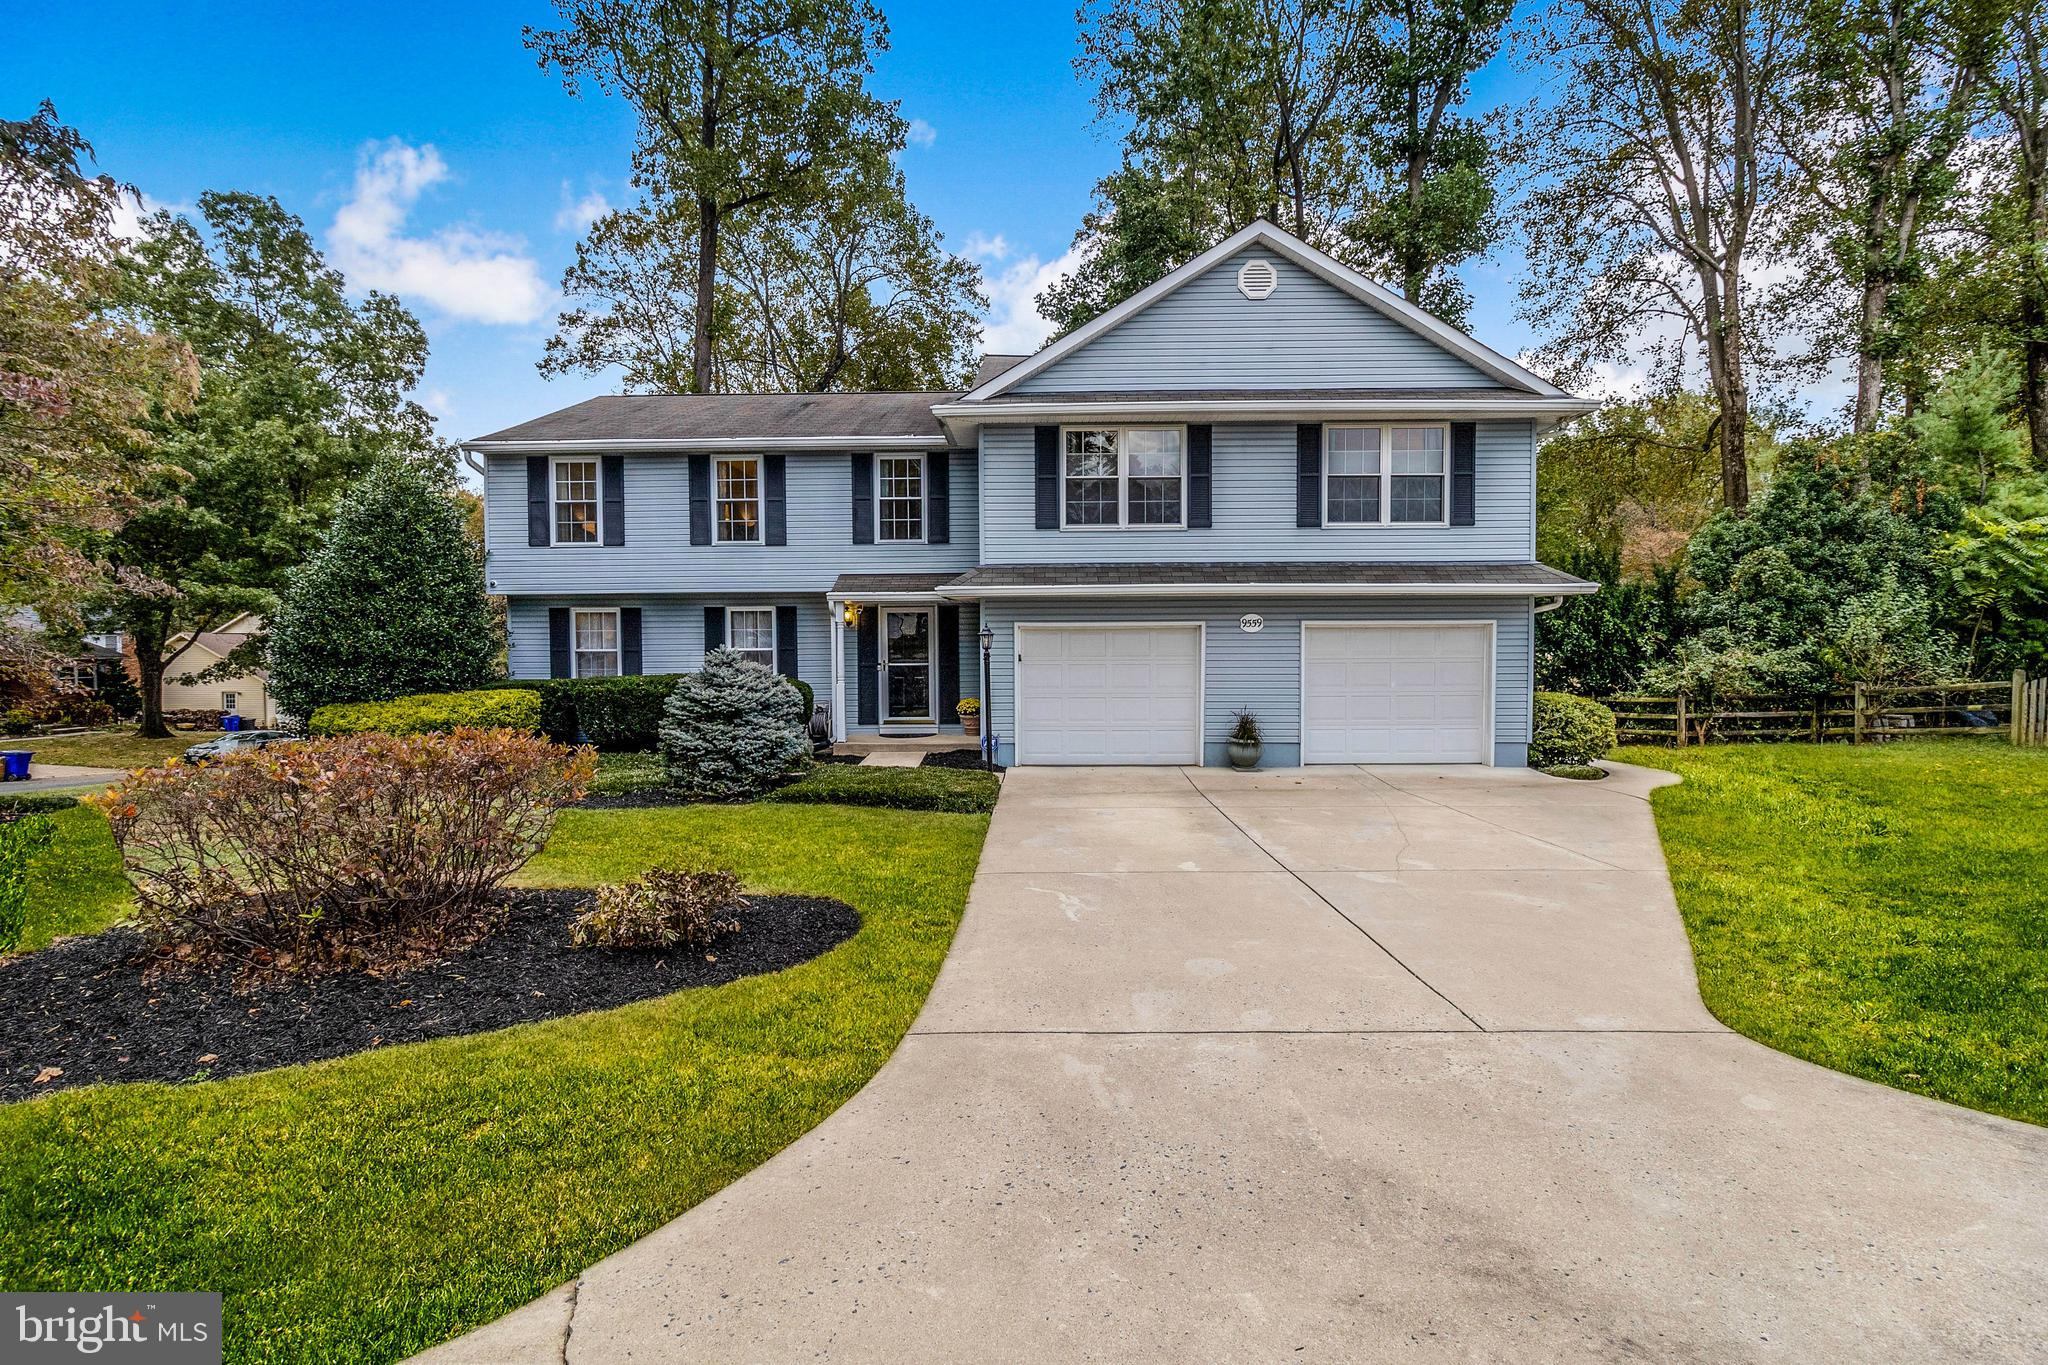 9559 MORNING MEWS, COLUMBIA, MD 21046